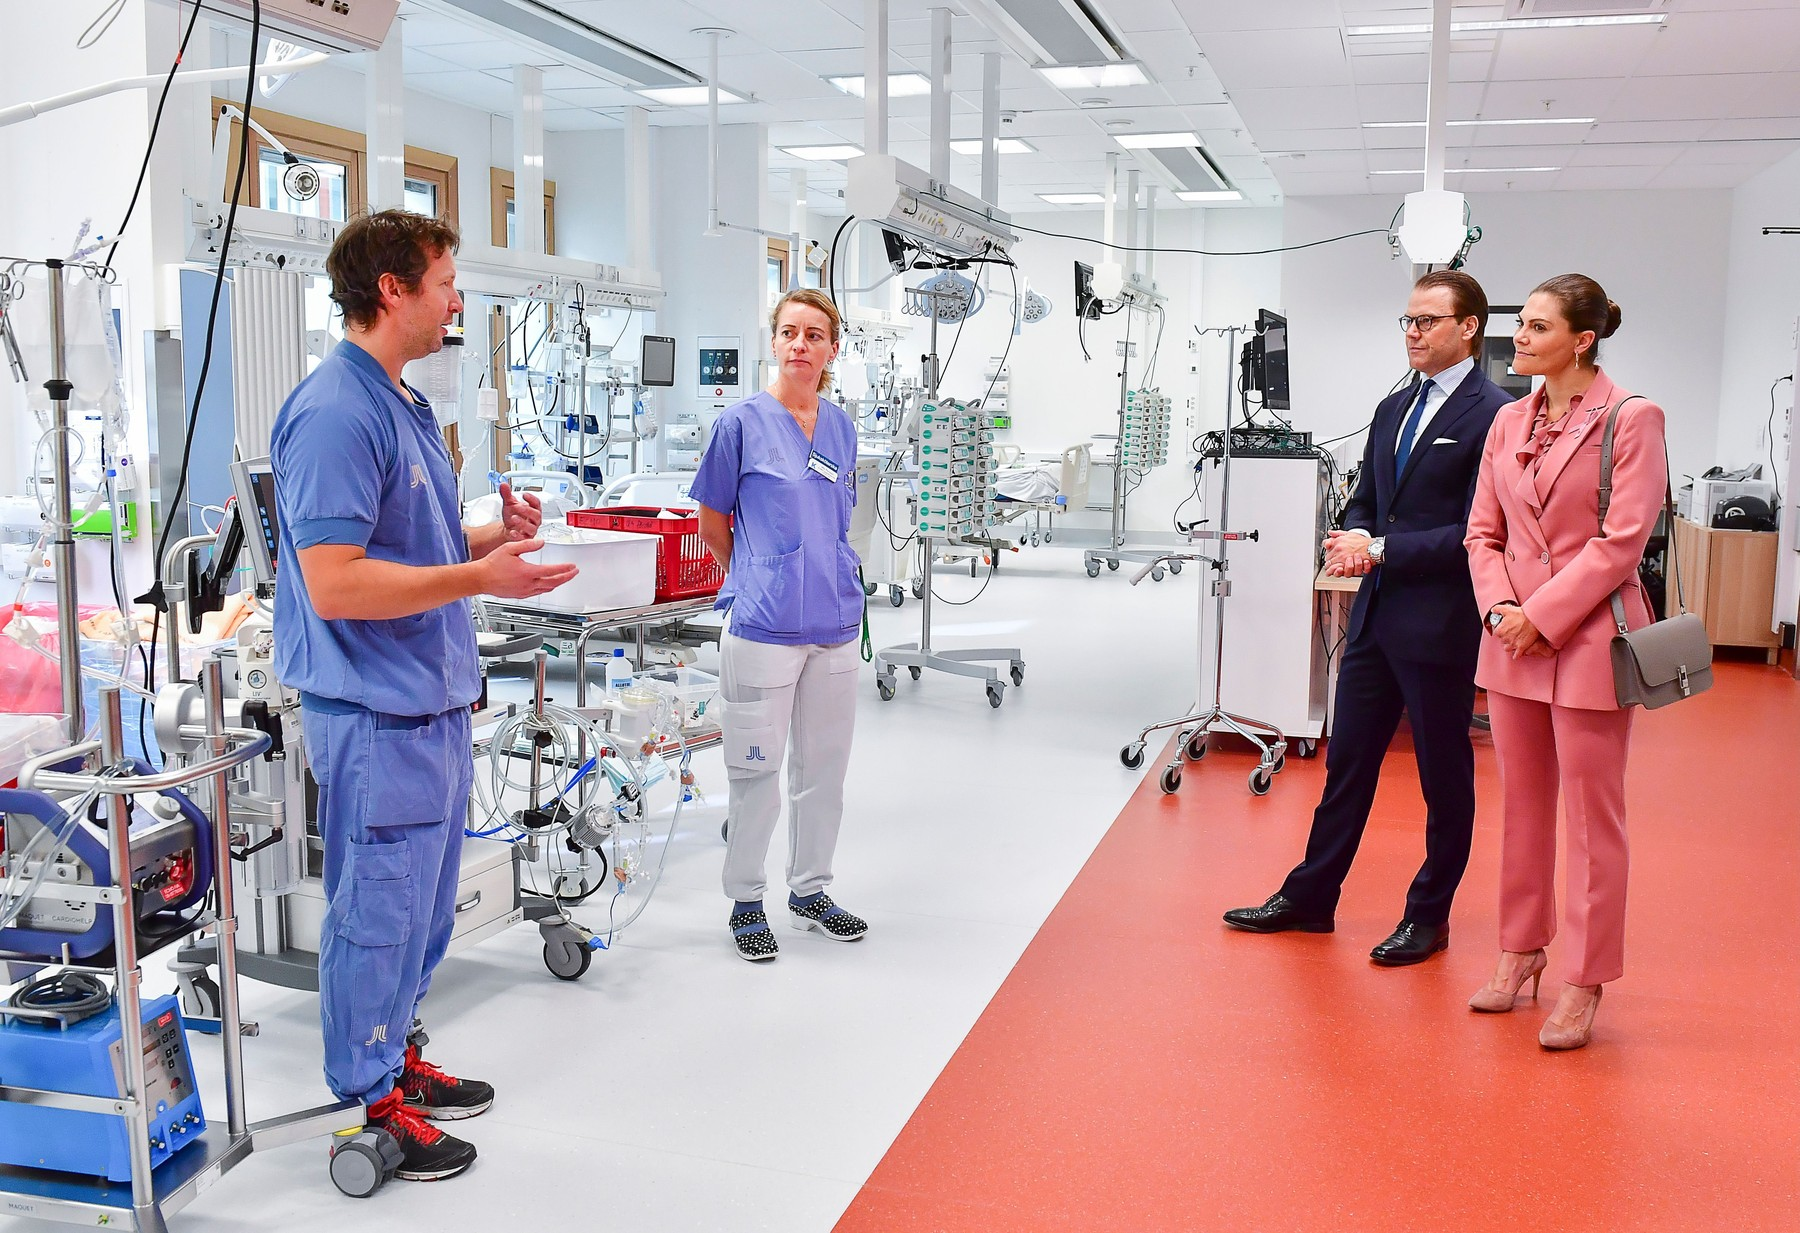 Crown Princess Victoria and Prince Daniel. The Crown Princess couple with Lars Falk, Clinical Director ECMO-unit, and nurse Mia Pettersson Crown Princess Victoria and Prince Daniel visit to ECMO Center, Karolinska University Hospital, Stockholm, Sweden - 30 Sep 2020,Image: 560636386, License: Rights-managed, Restrictions: , Model Release: no, Credit line: IBL / Shutterstock Editorial / Profimedia